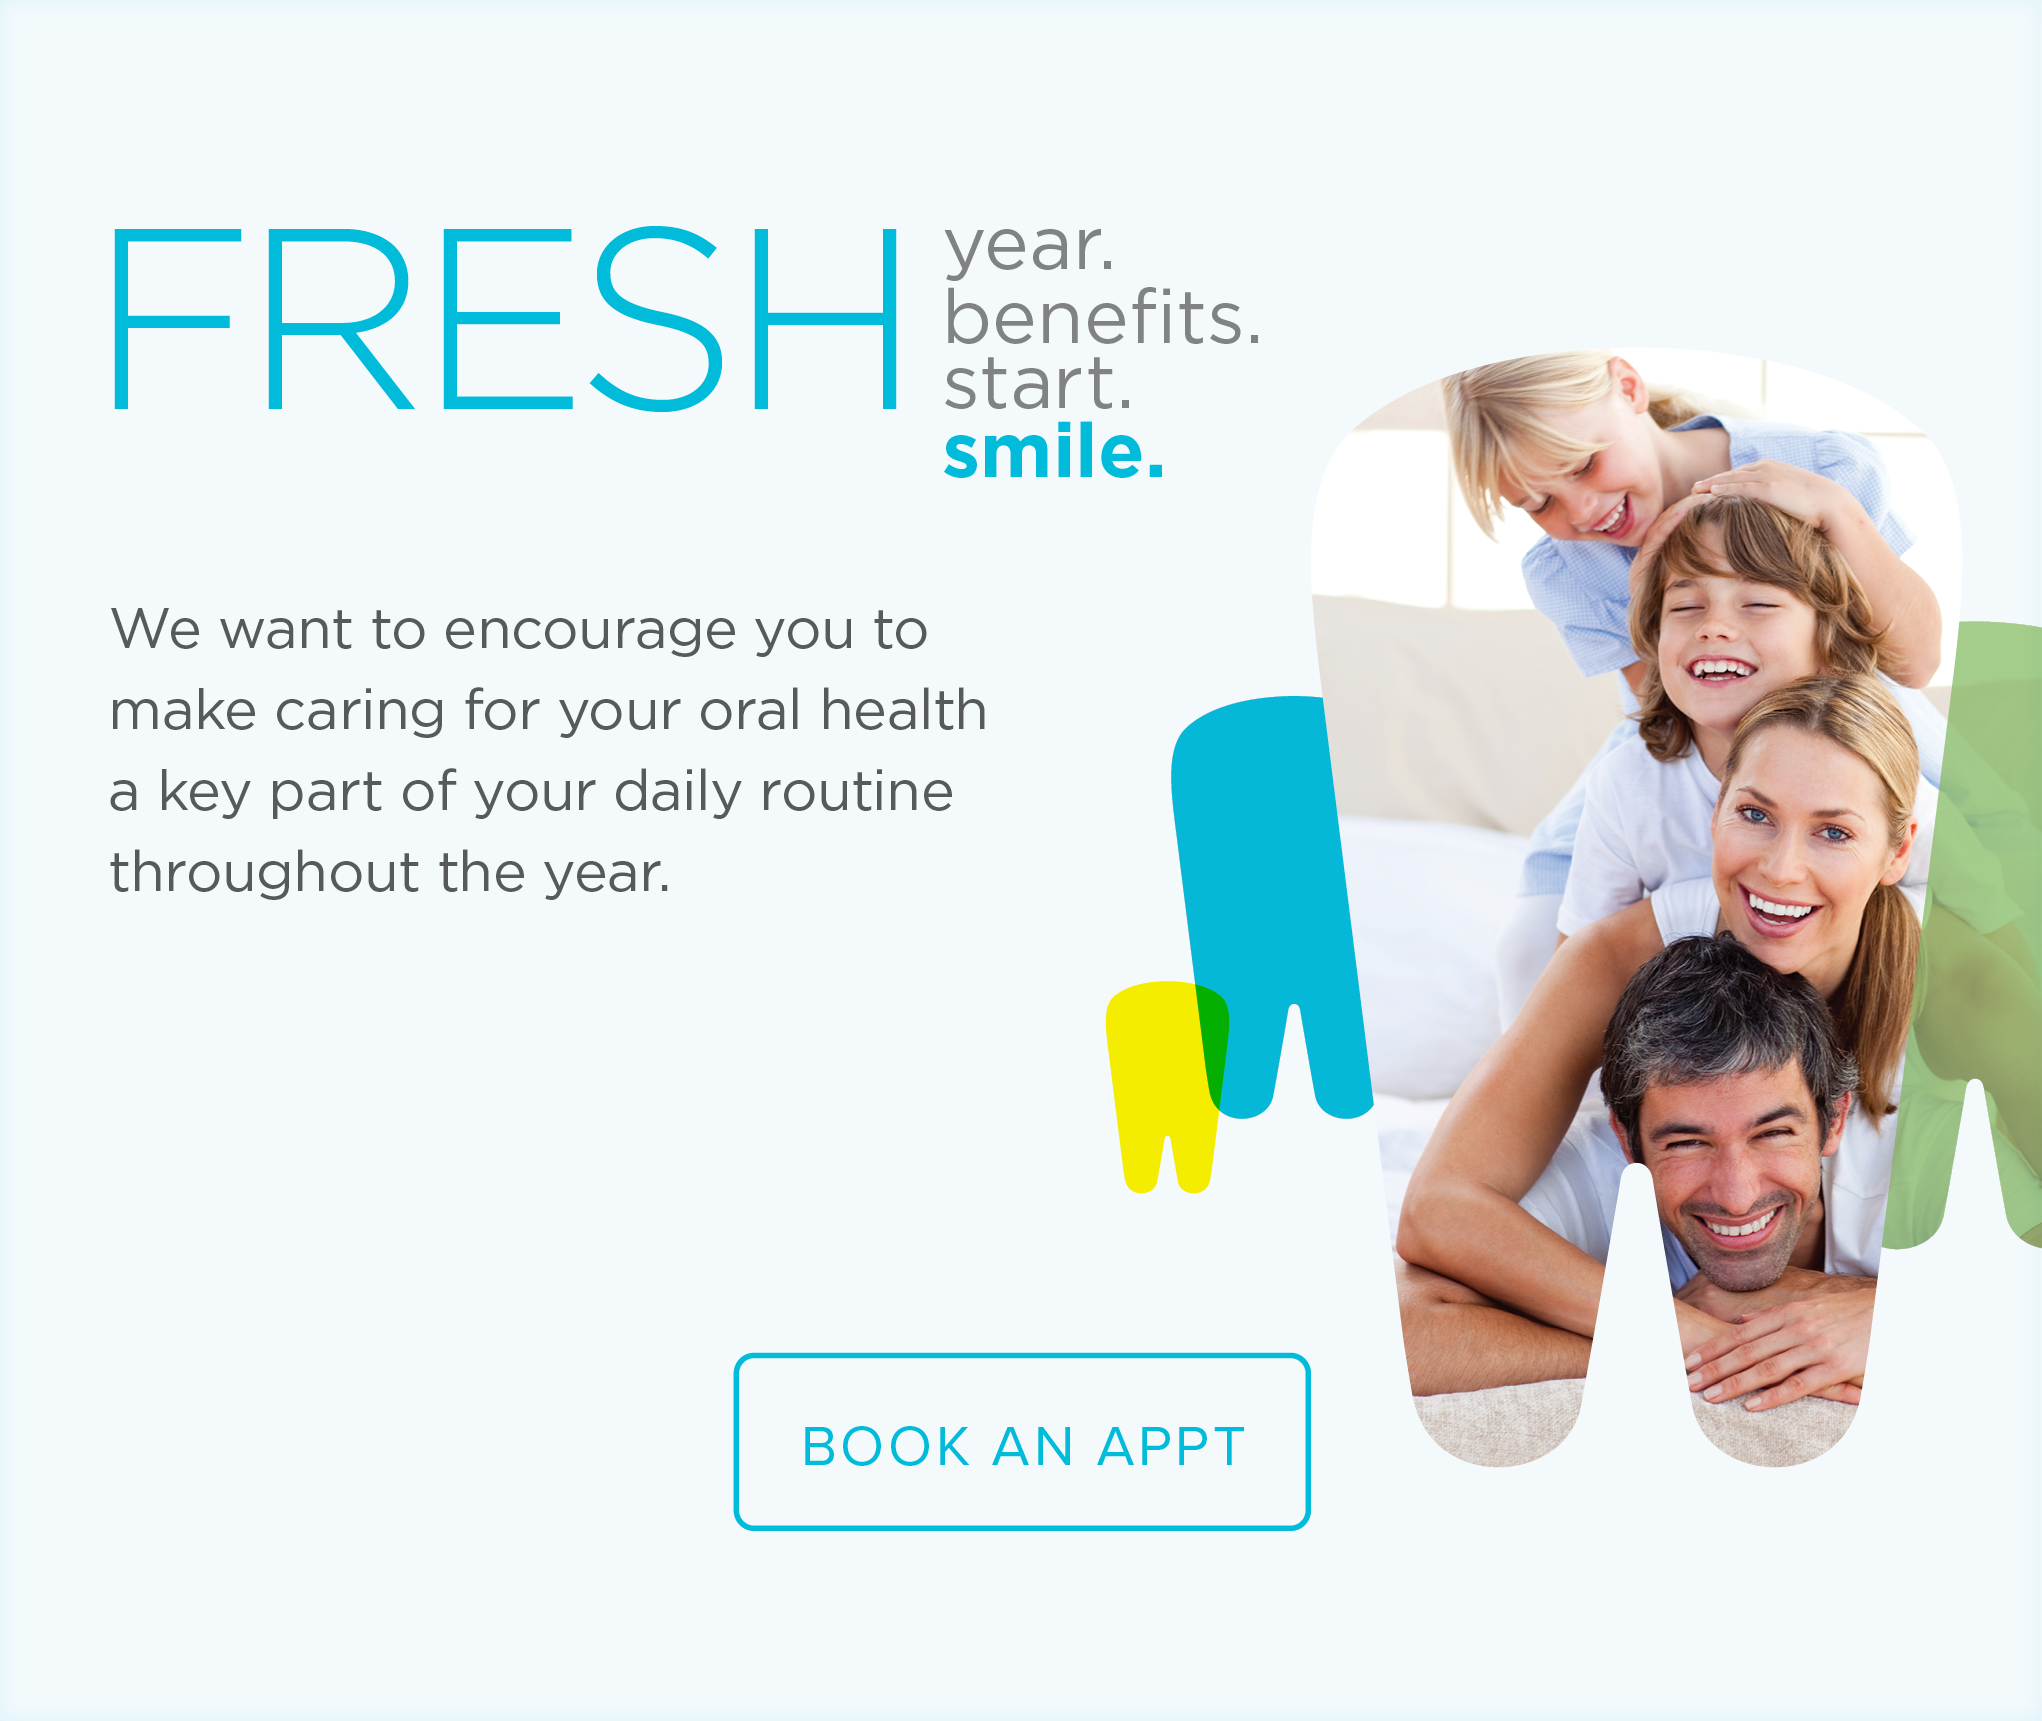 Cottonwood Smiles Dentistry and Orthodontics - Make the Most of Your Benefits